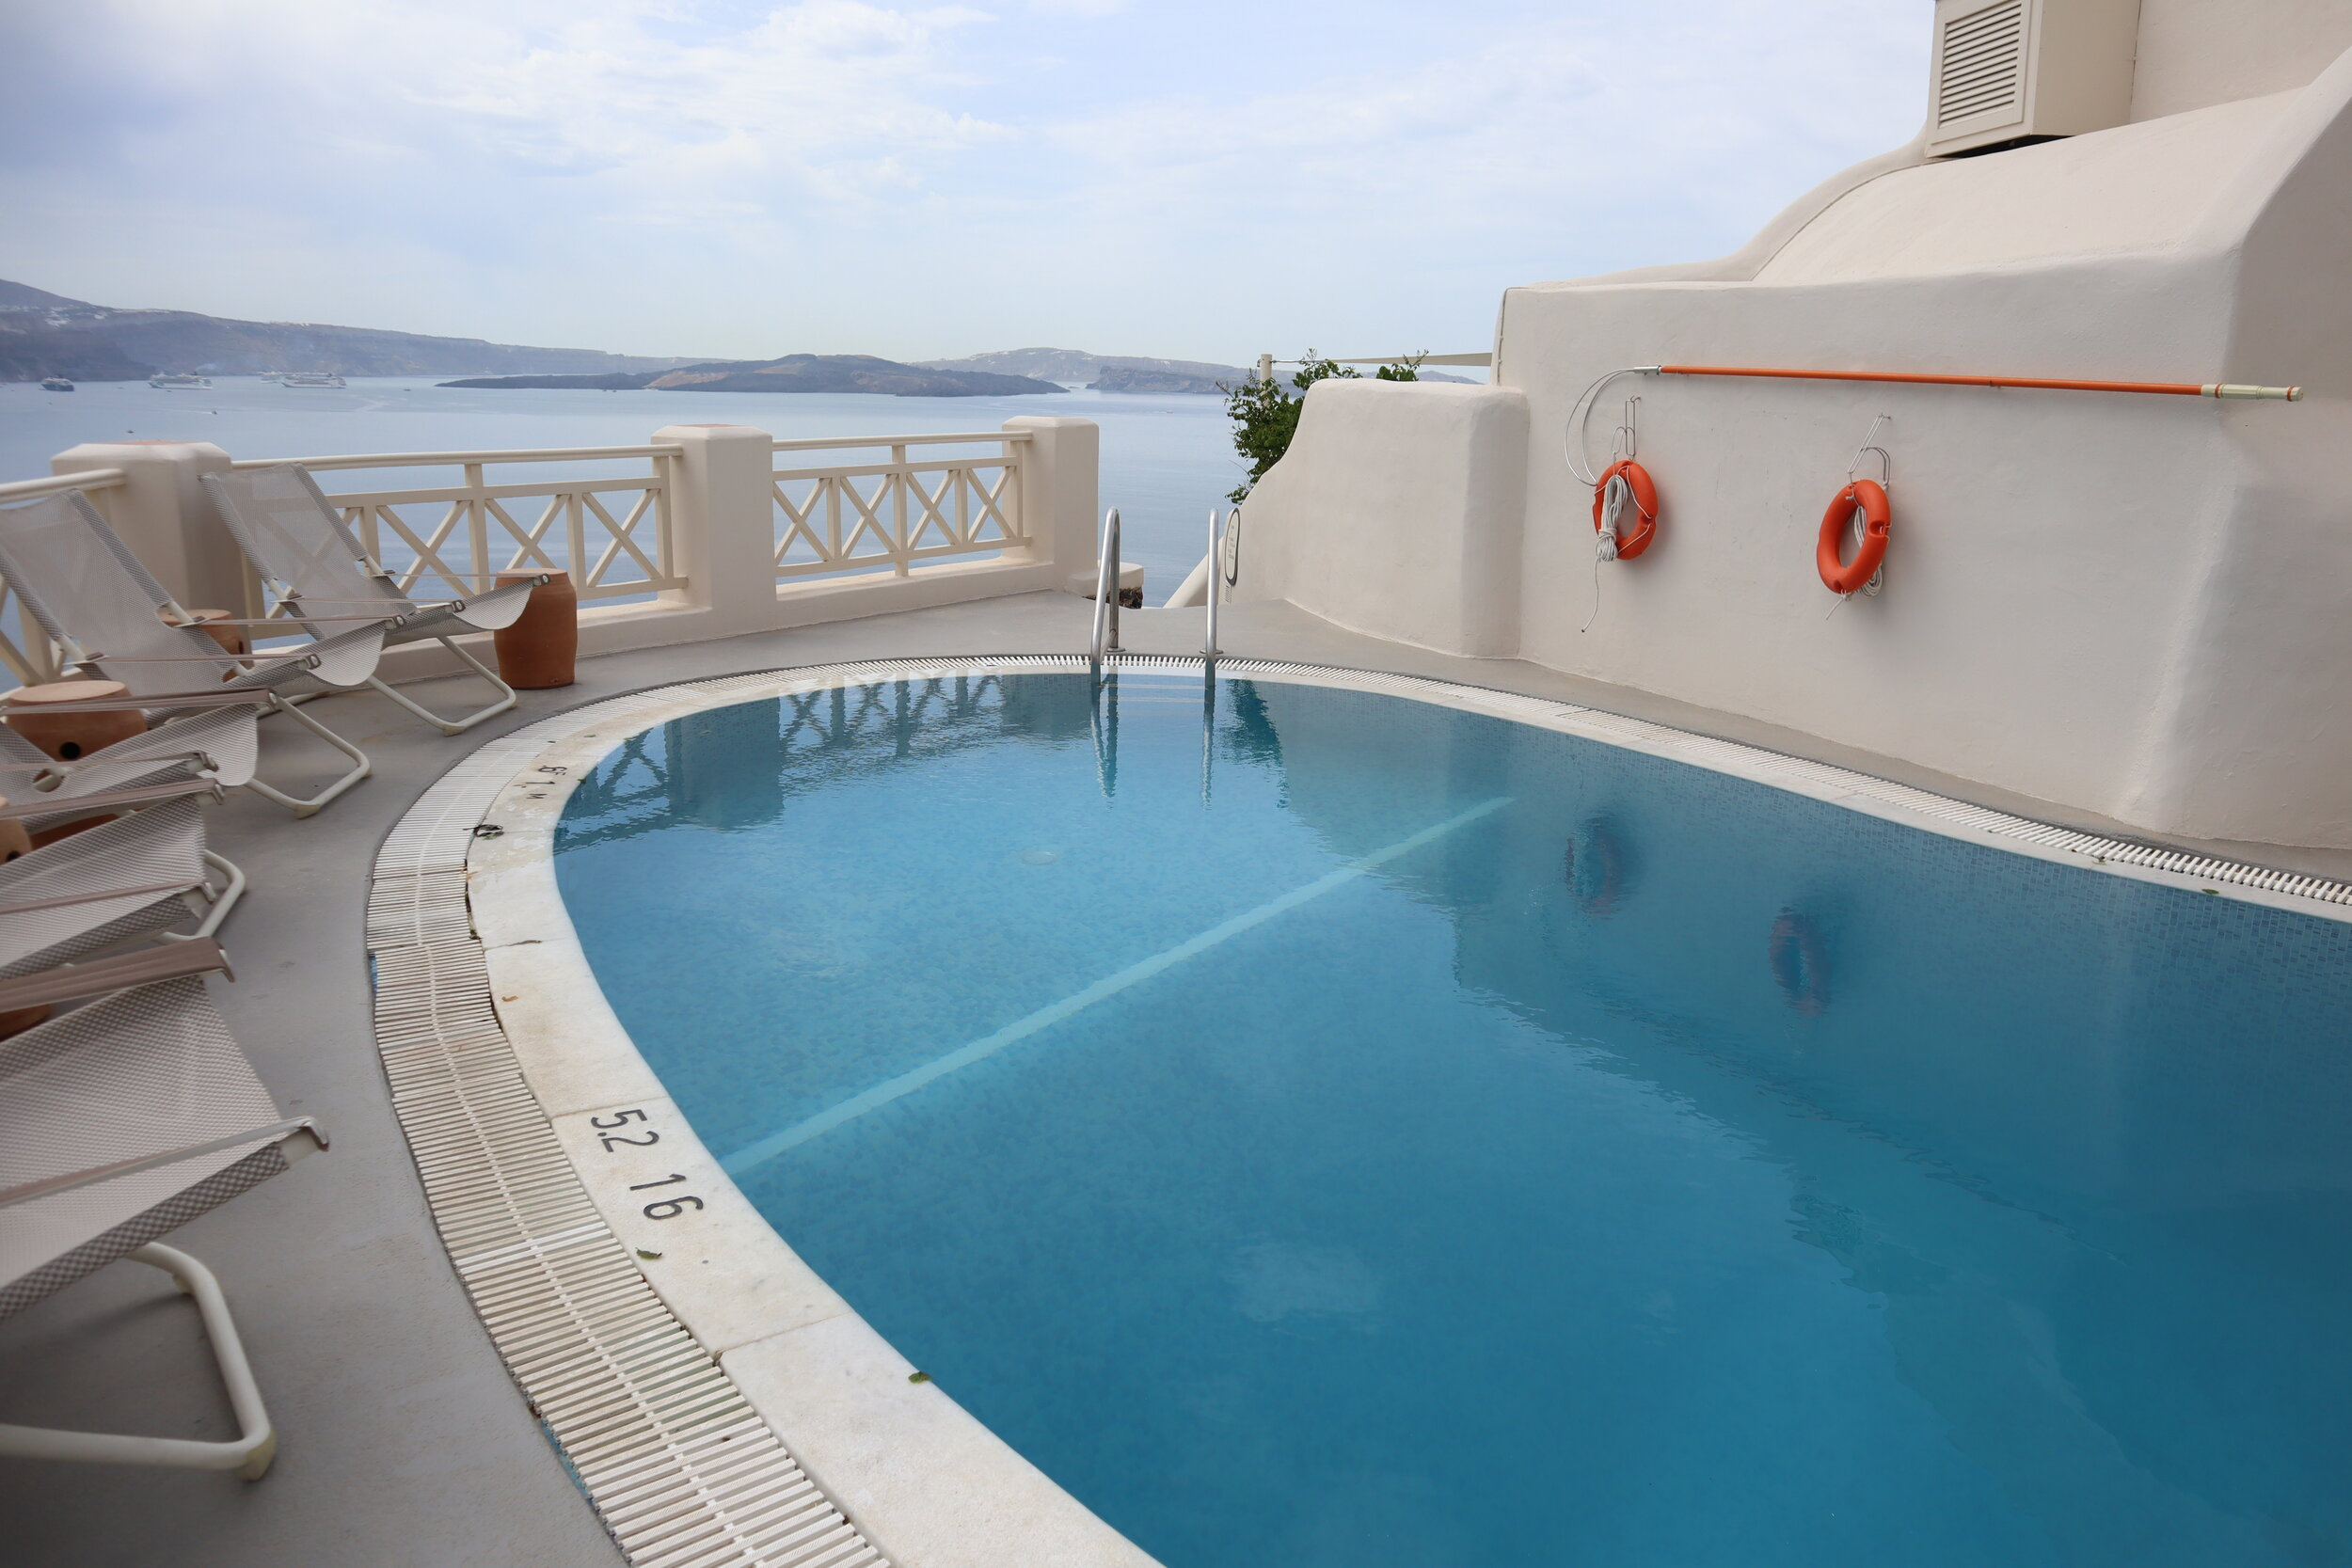 Mystique Santorini – Captain's Lounge pool